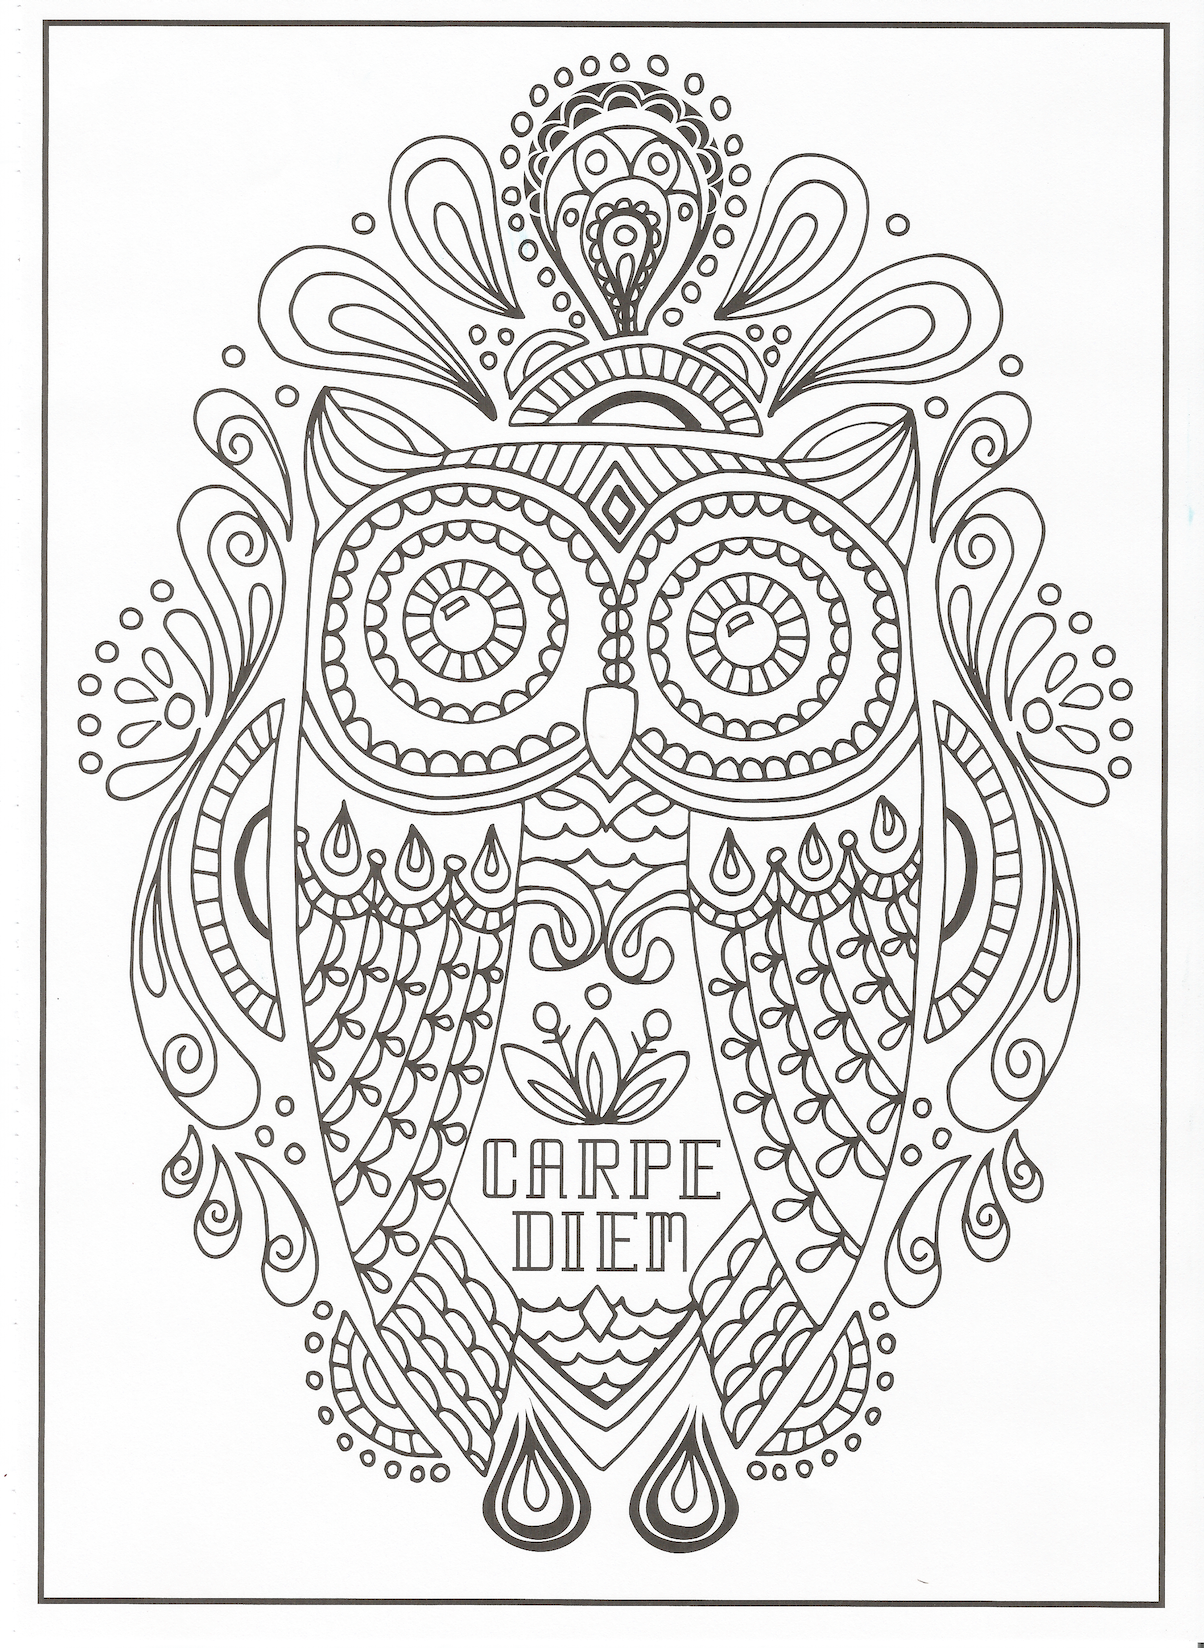 Timeless Creations Creative Quotes Coloring Page Carpe Diem Owl Coloring Books Creation Coloring Pages Mandala Coloring Books